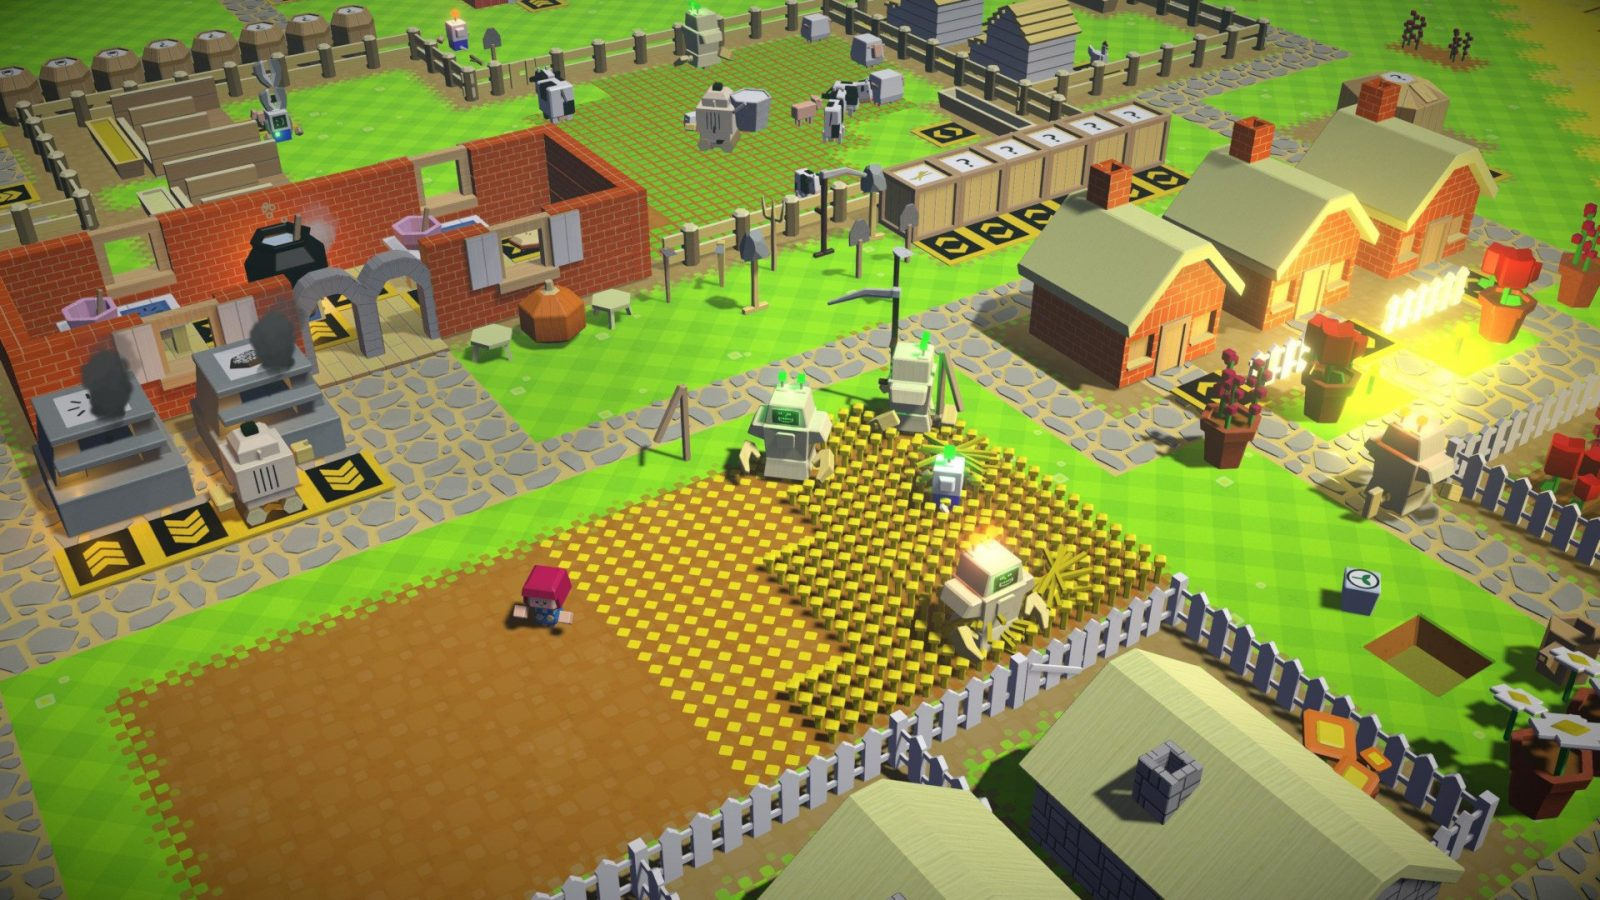 Autonauts Launches for PC on October 17